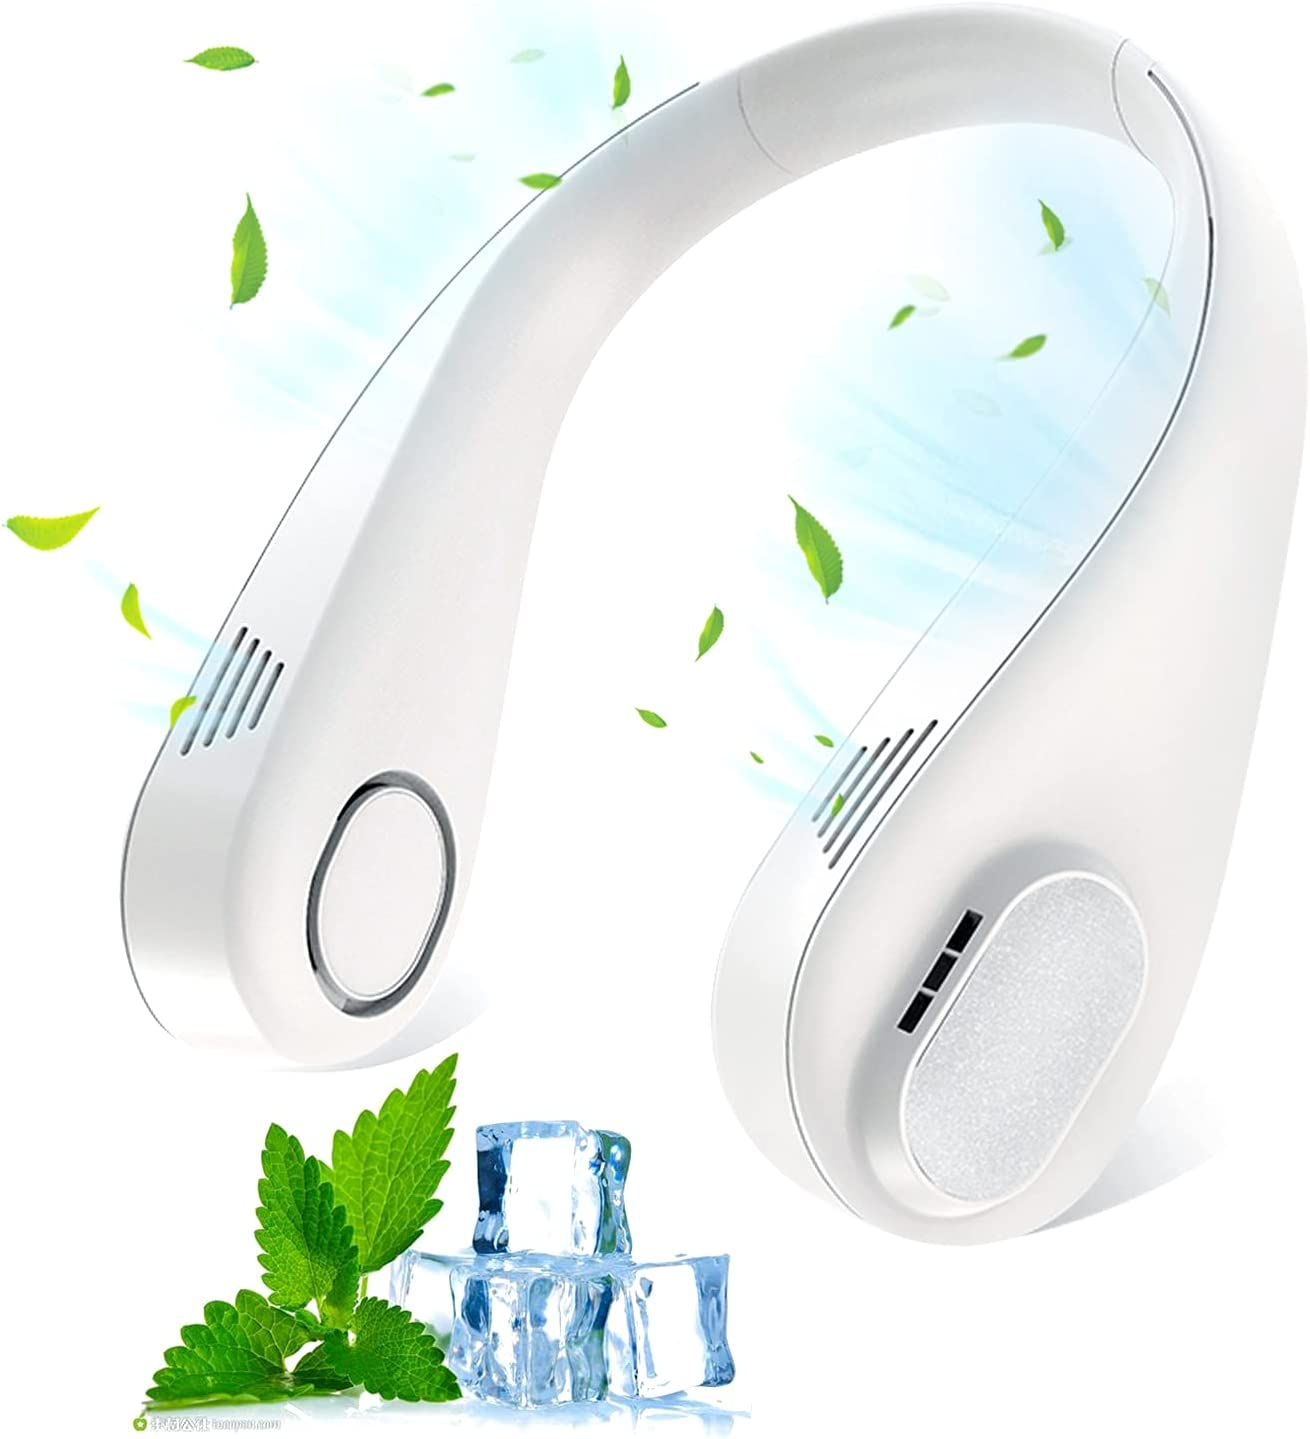 Portable Neck Fan, Hands Free Wearable Cooling fan, USB Rechargeable, Personal Fan for Office, 3 Speeds Strong Air Flow, 360° Adjustable Headphone Design, Hanging Fan for Outdoor Sports, Travel, Home